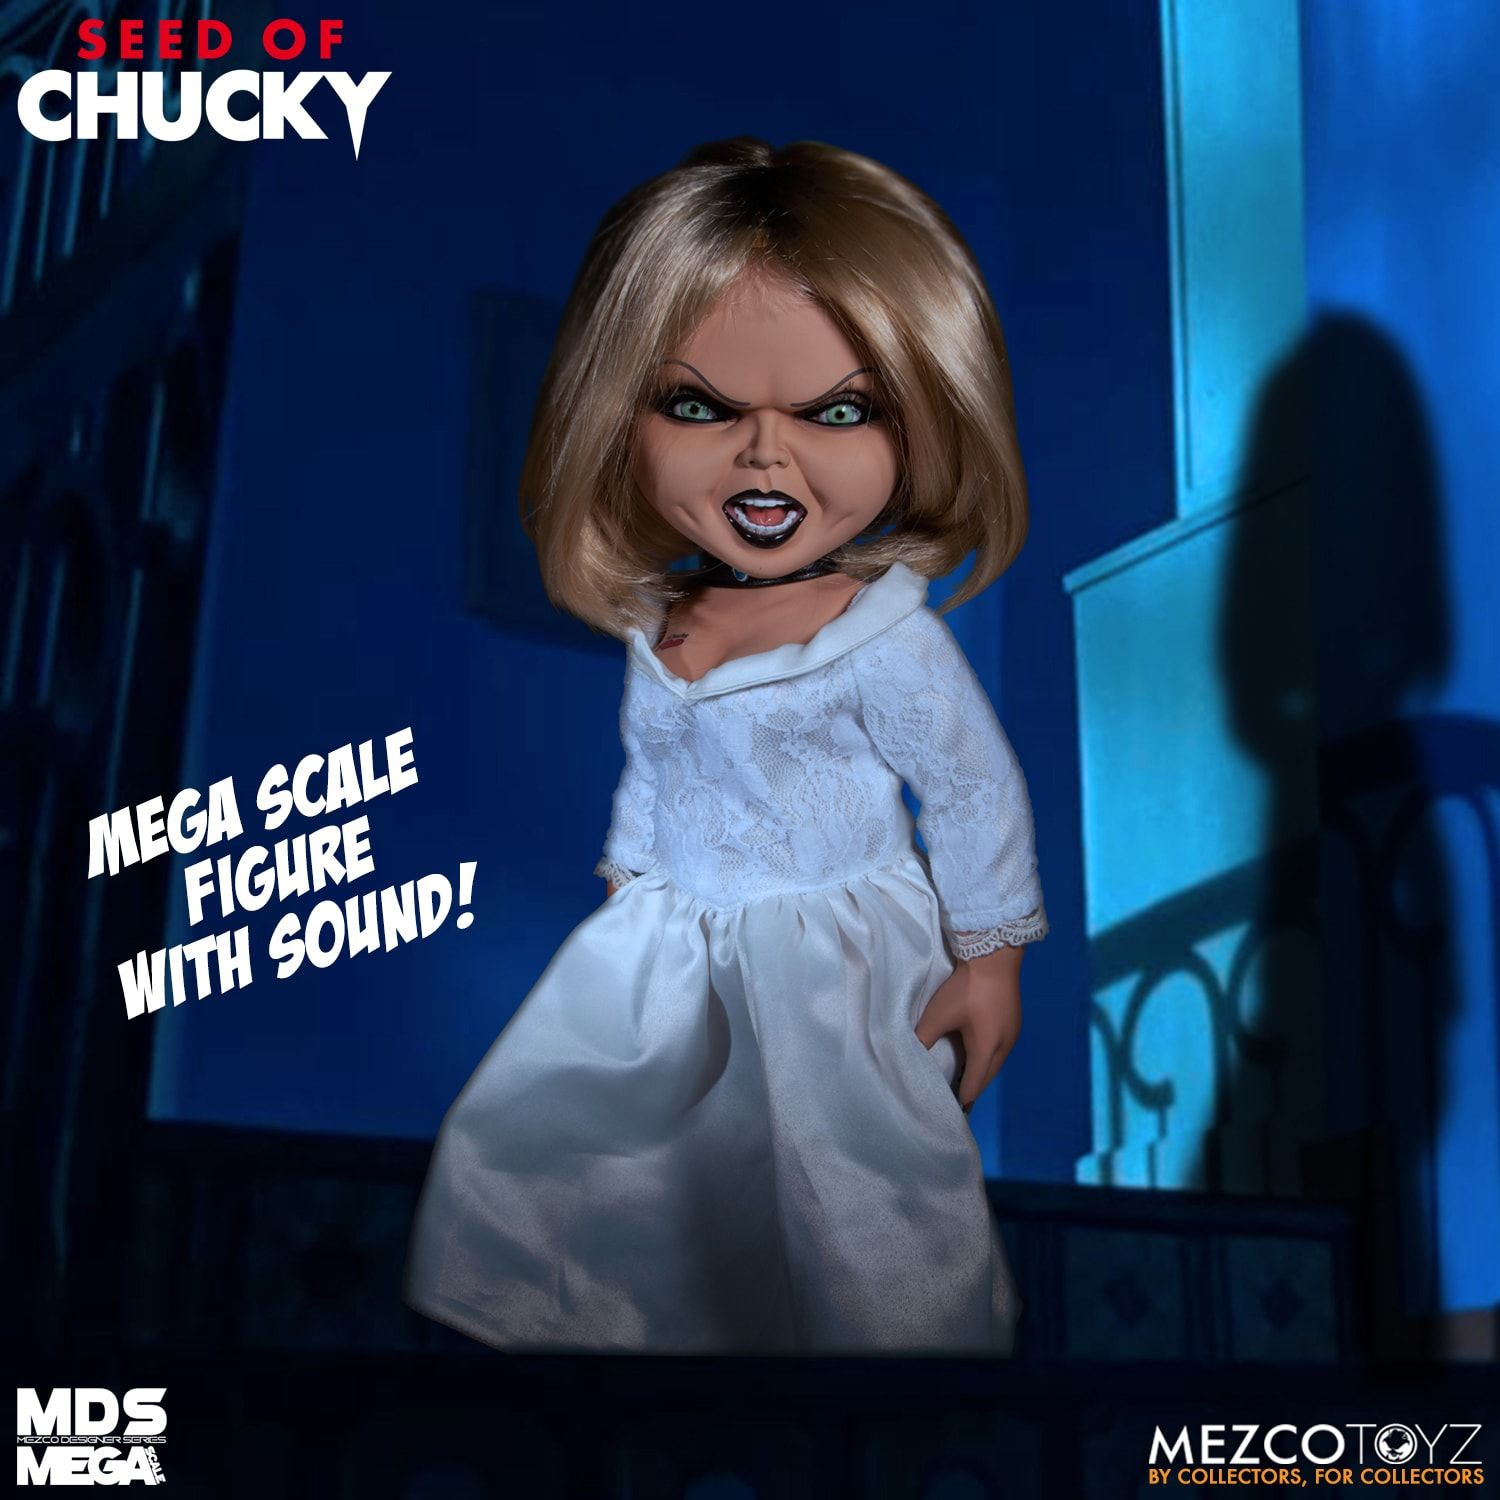 Mezco Gives a Voice to Tiffany from